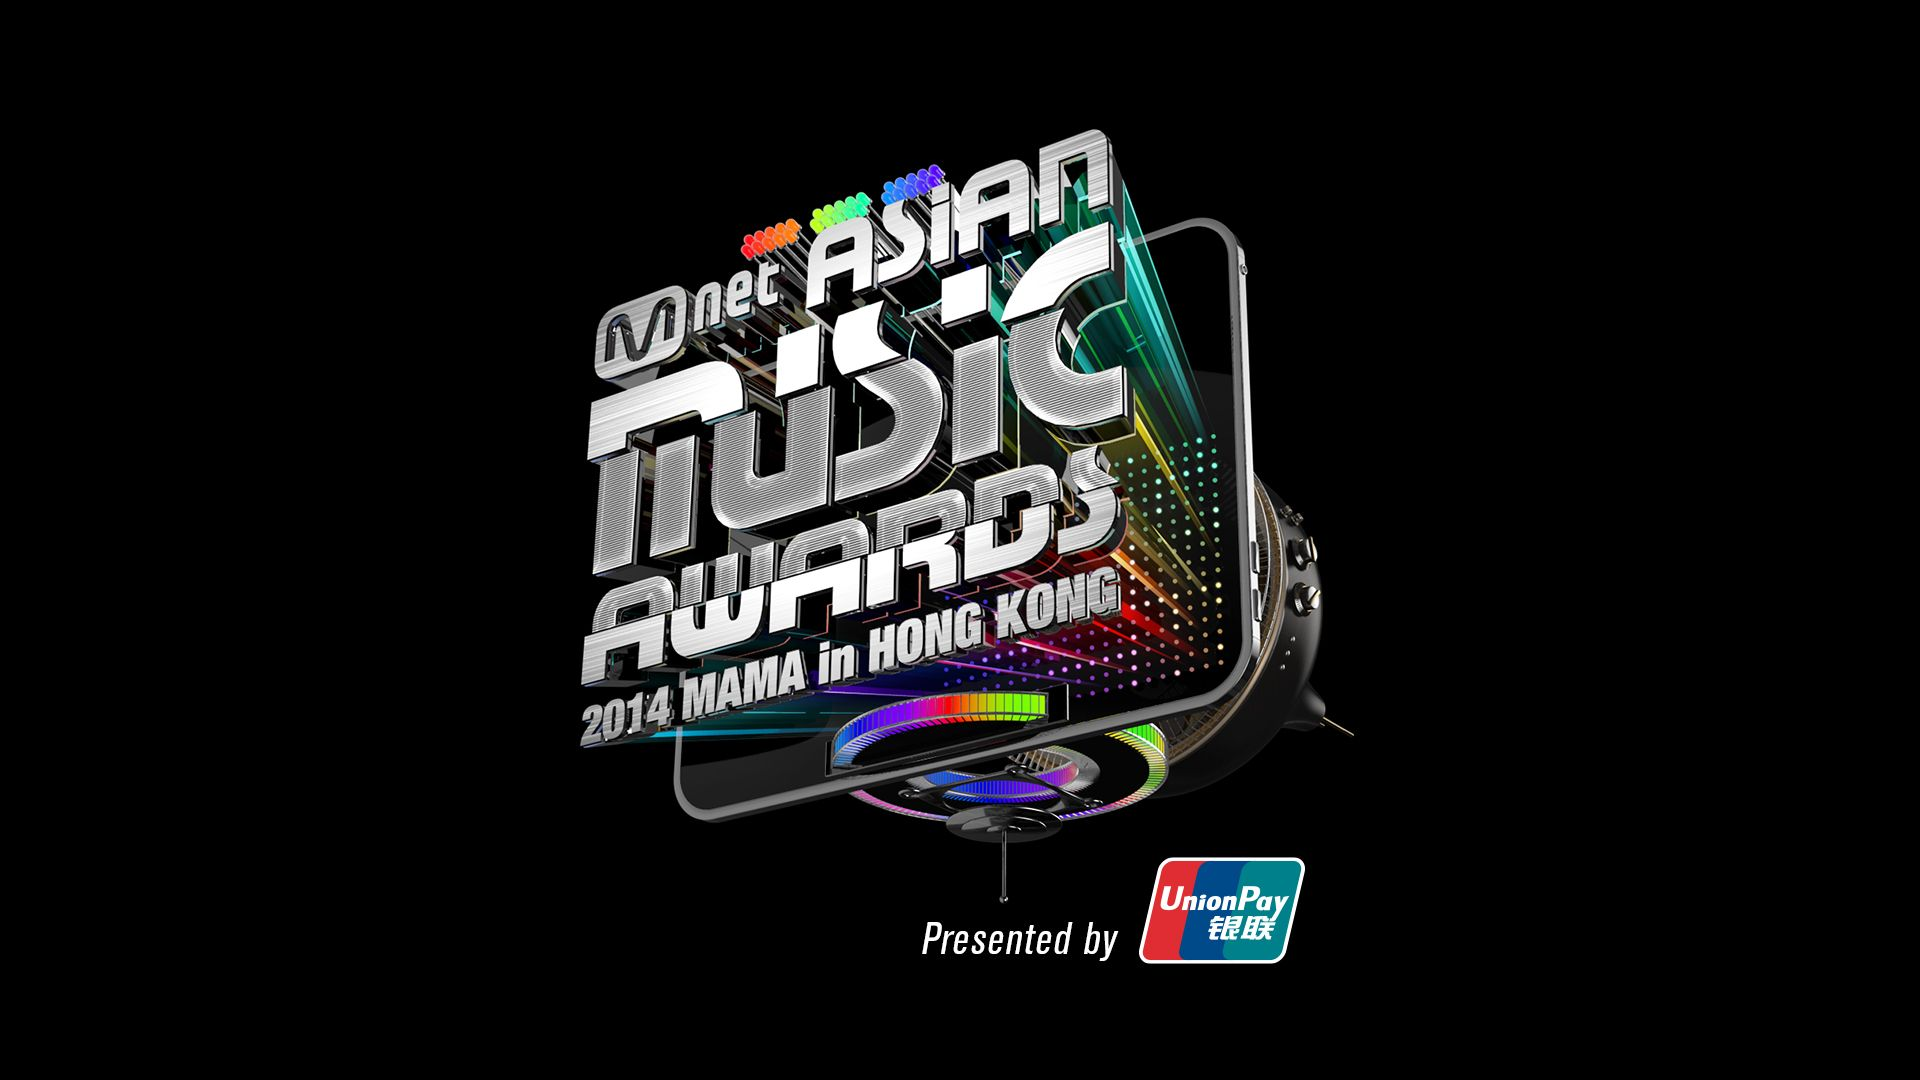 MAMA 2014 Live: Mnet America Will Broadcast Asian Music Awards Live On TV, Online & At CGV Cinema http://www.kpopstarz.com/articles/141444/20141125/mama-2014-live-information-mnet-america-will-broadcast-mama-live-on-tv-online-at-cgv-cinema.htm